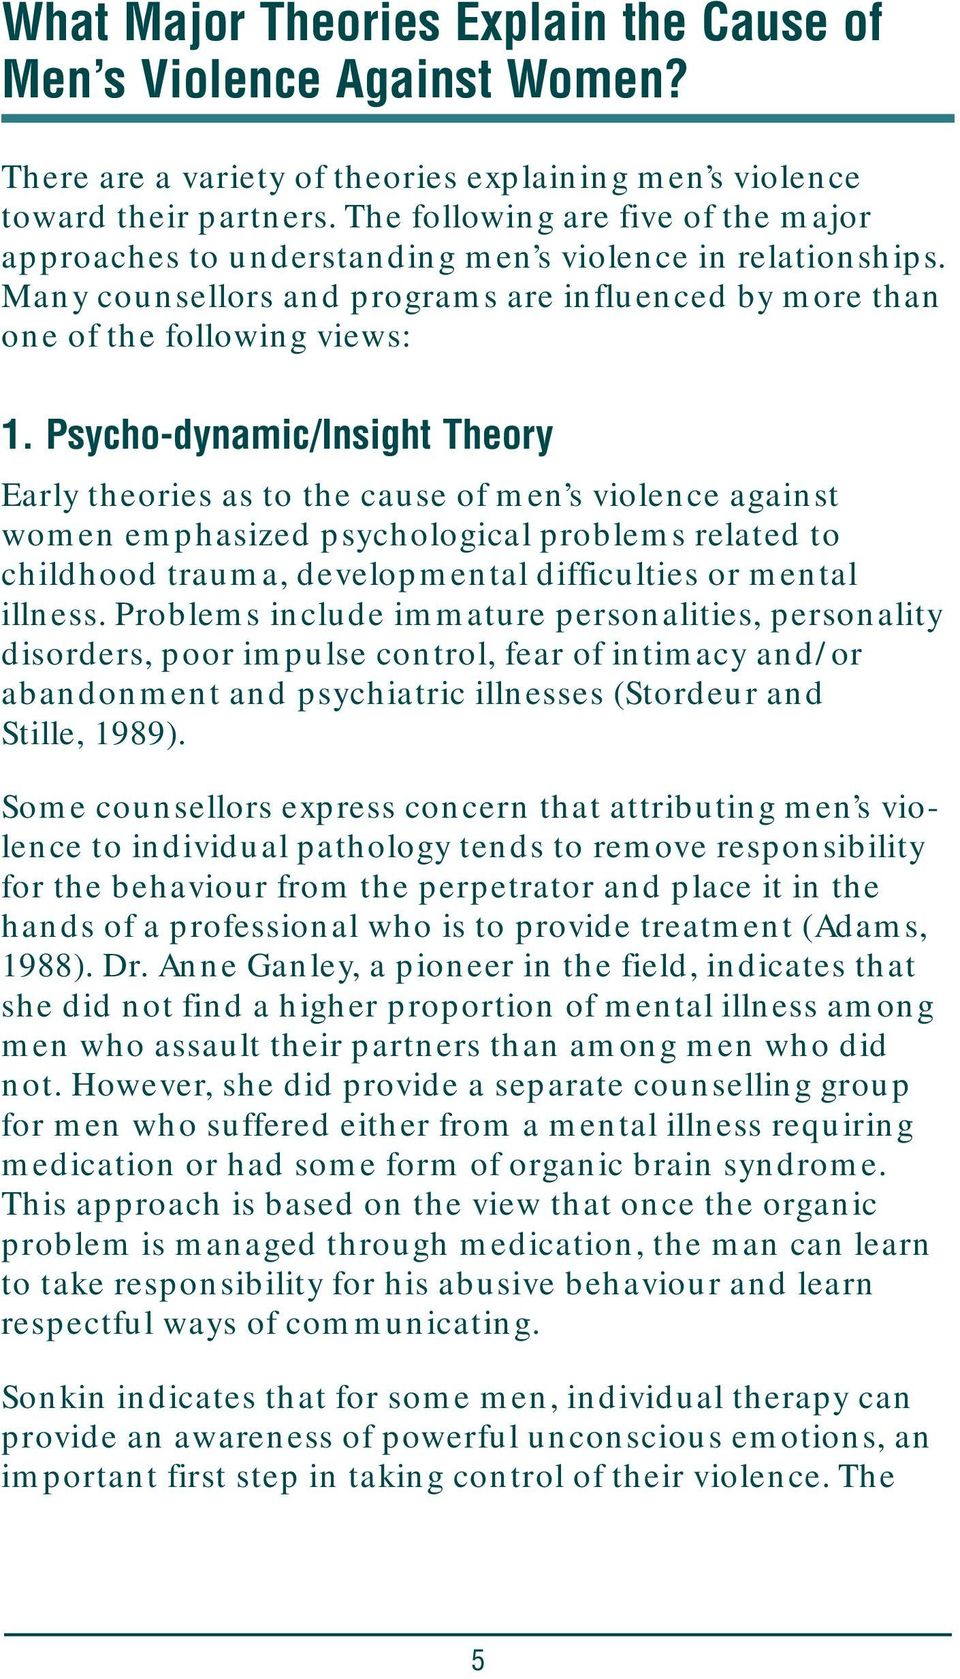 Psycho-dynamic/Insight Theory Early theories as to the cause of men s violence against women emphasized psychological problems related to childhood trauma, developmental difficulties or mental